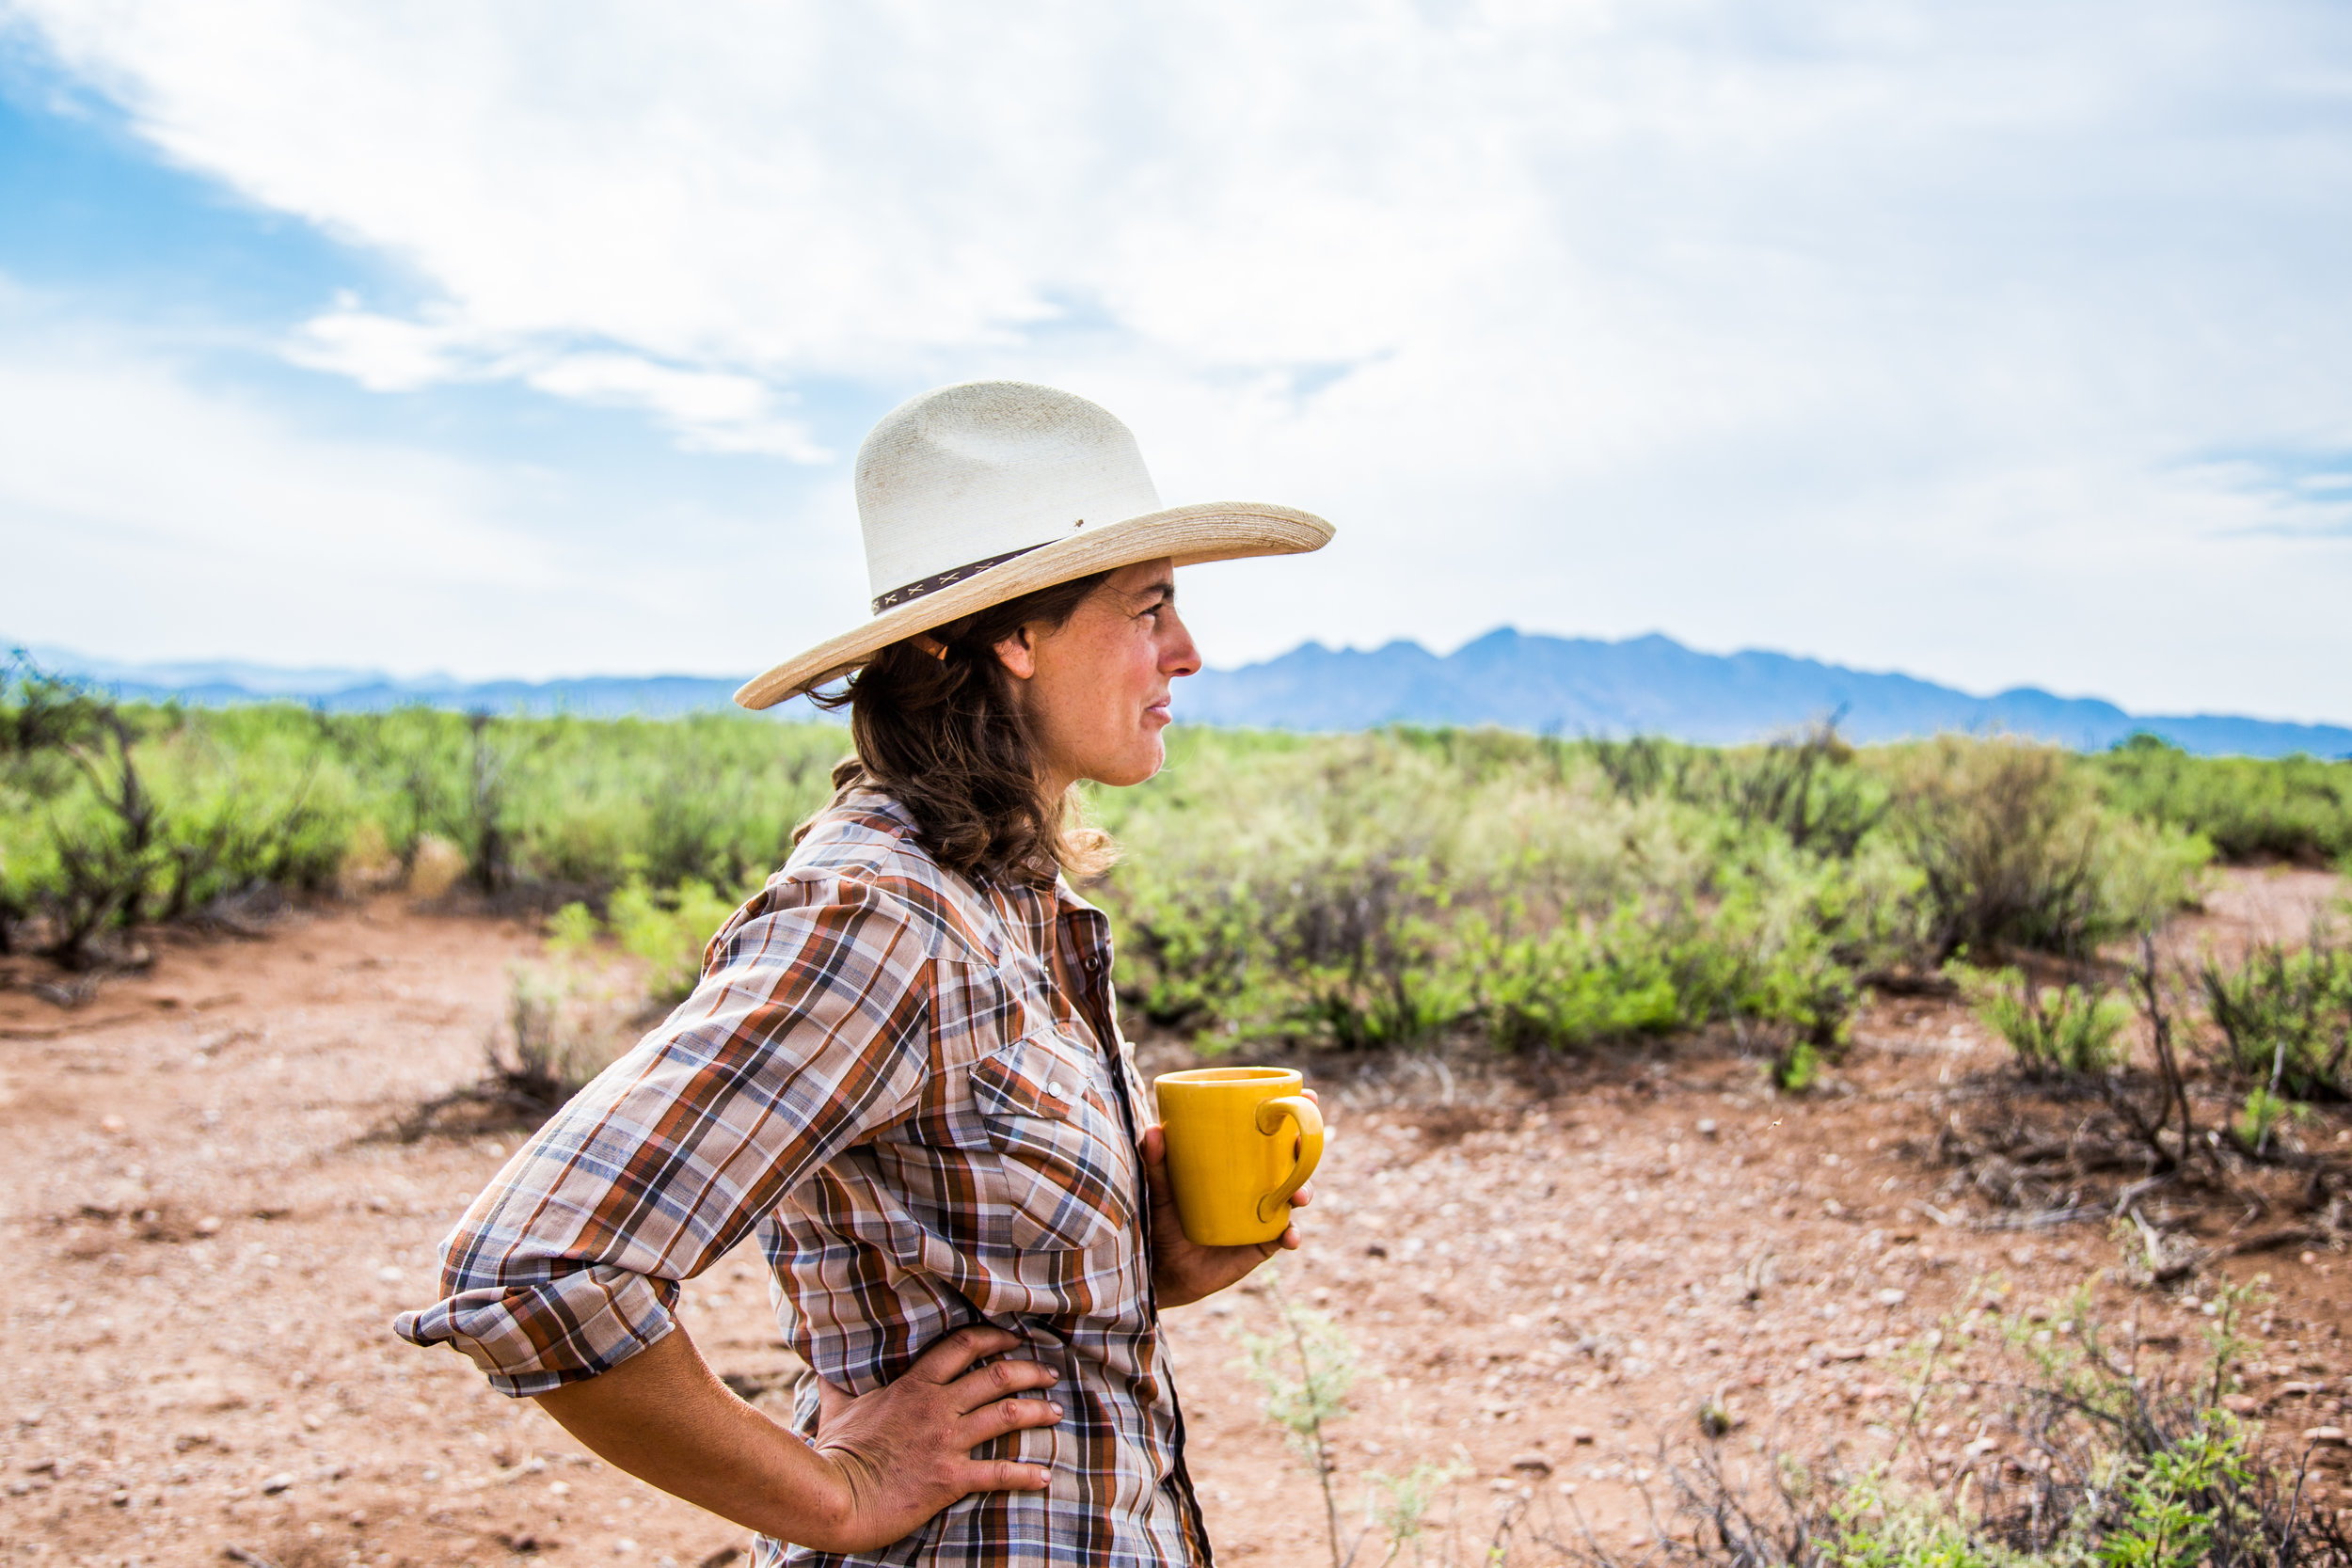 Arizona has the highest proportion of female farmers – but conditions in this dry desert landscape aren't easy, and rural isolation has created a tapestry of challenges